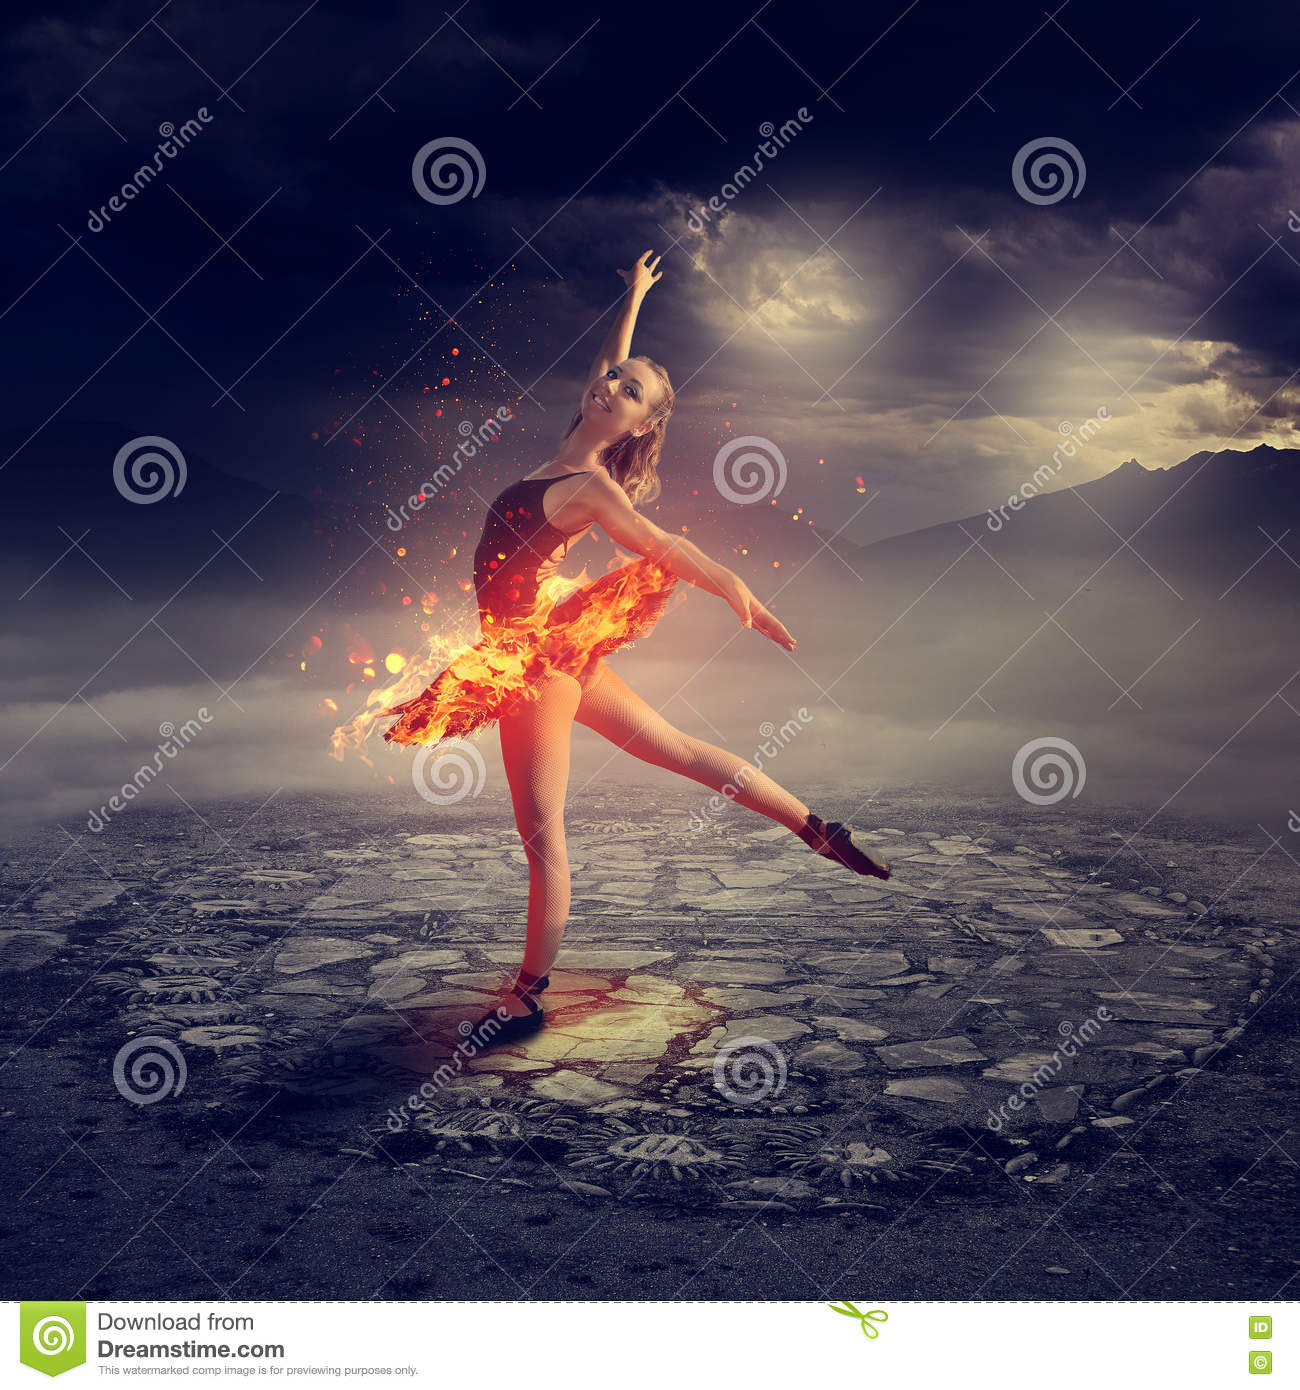 Young ballet dancer on fire